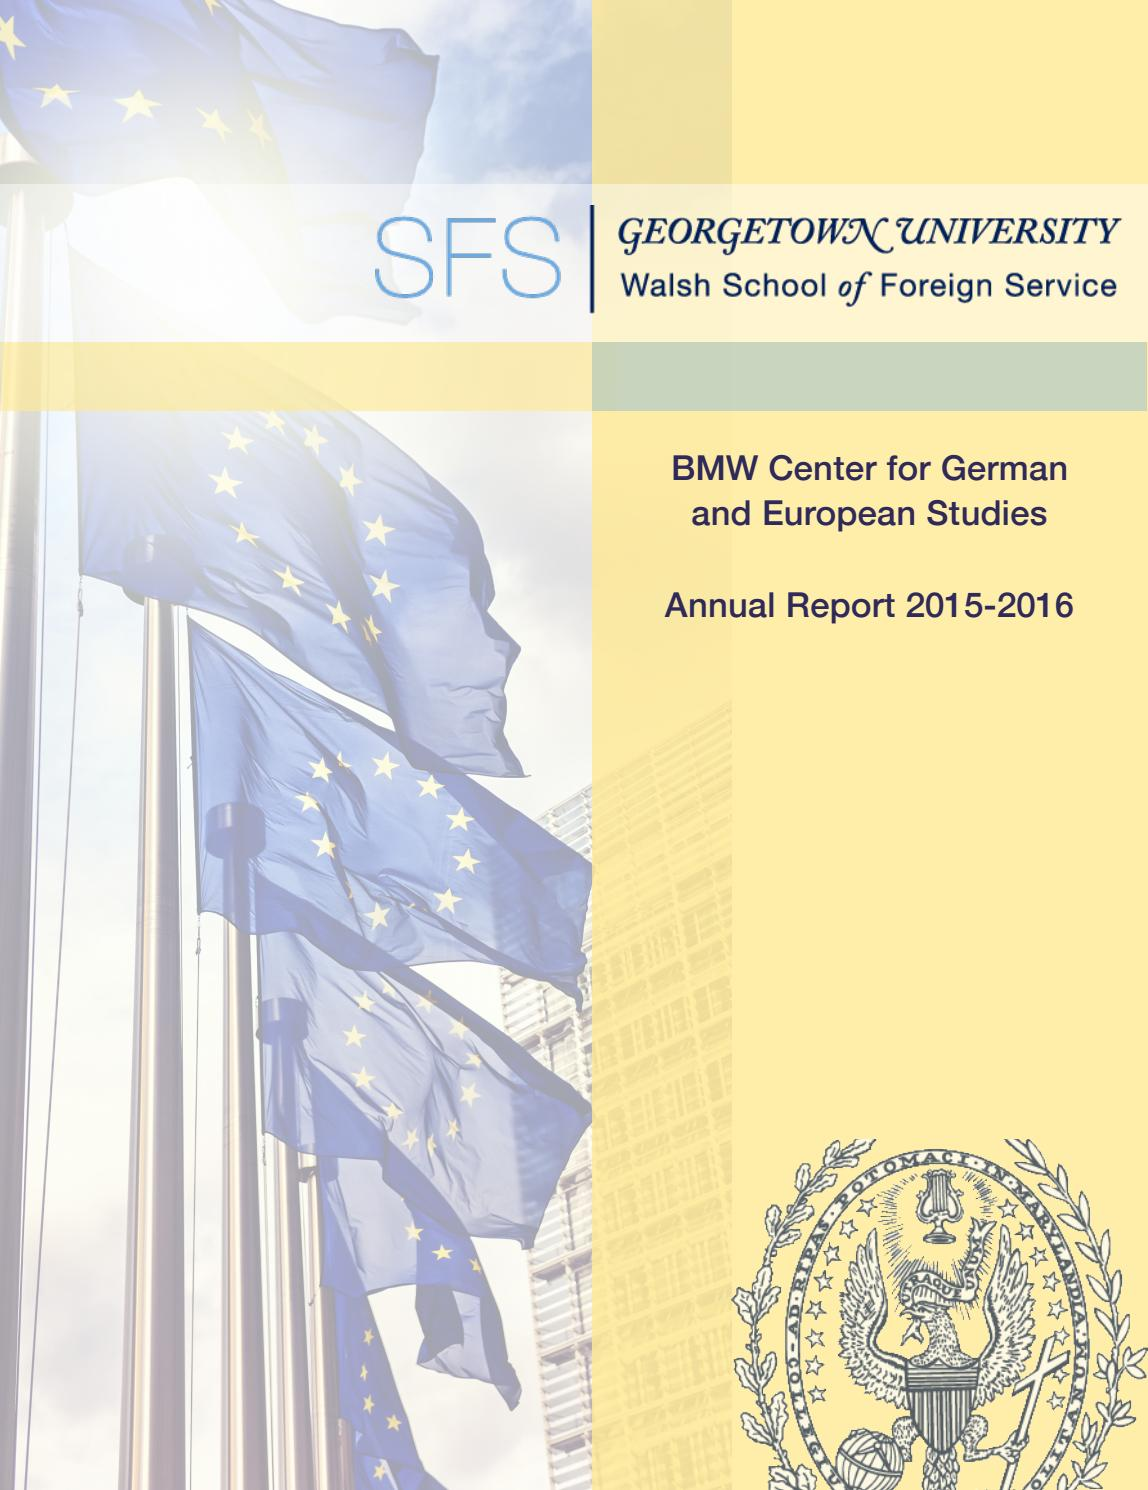 2015 2016 bmw center for german and european studies annual report 2015 2016 bmw center for german and european studies annual report by school of foreign service georgetown university issuu kristyandbryce Gallery